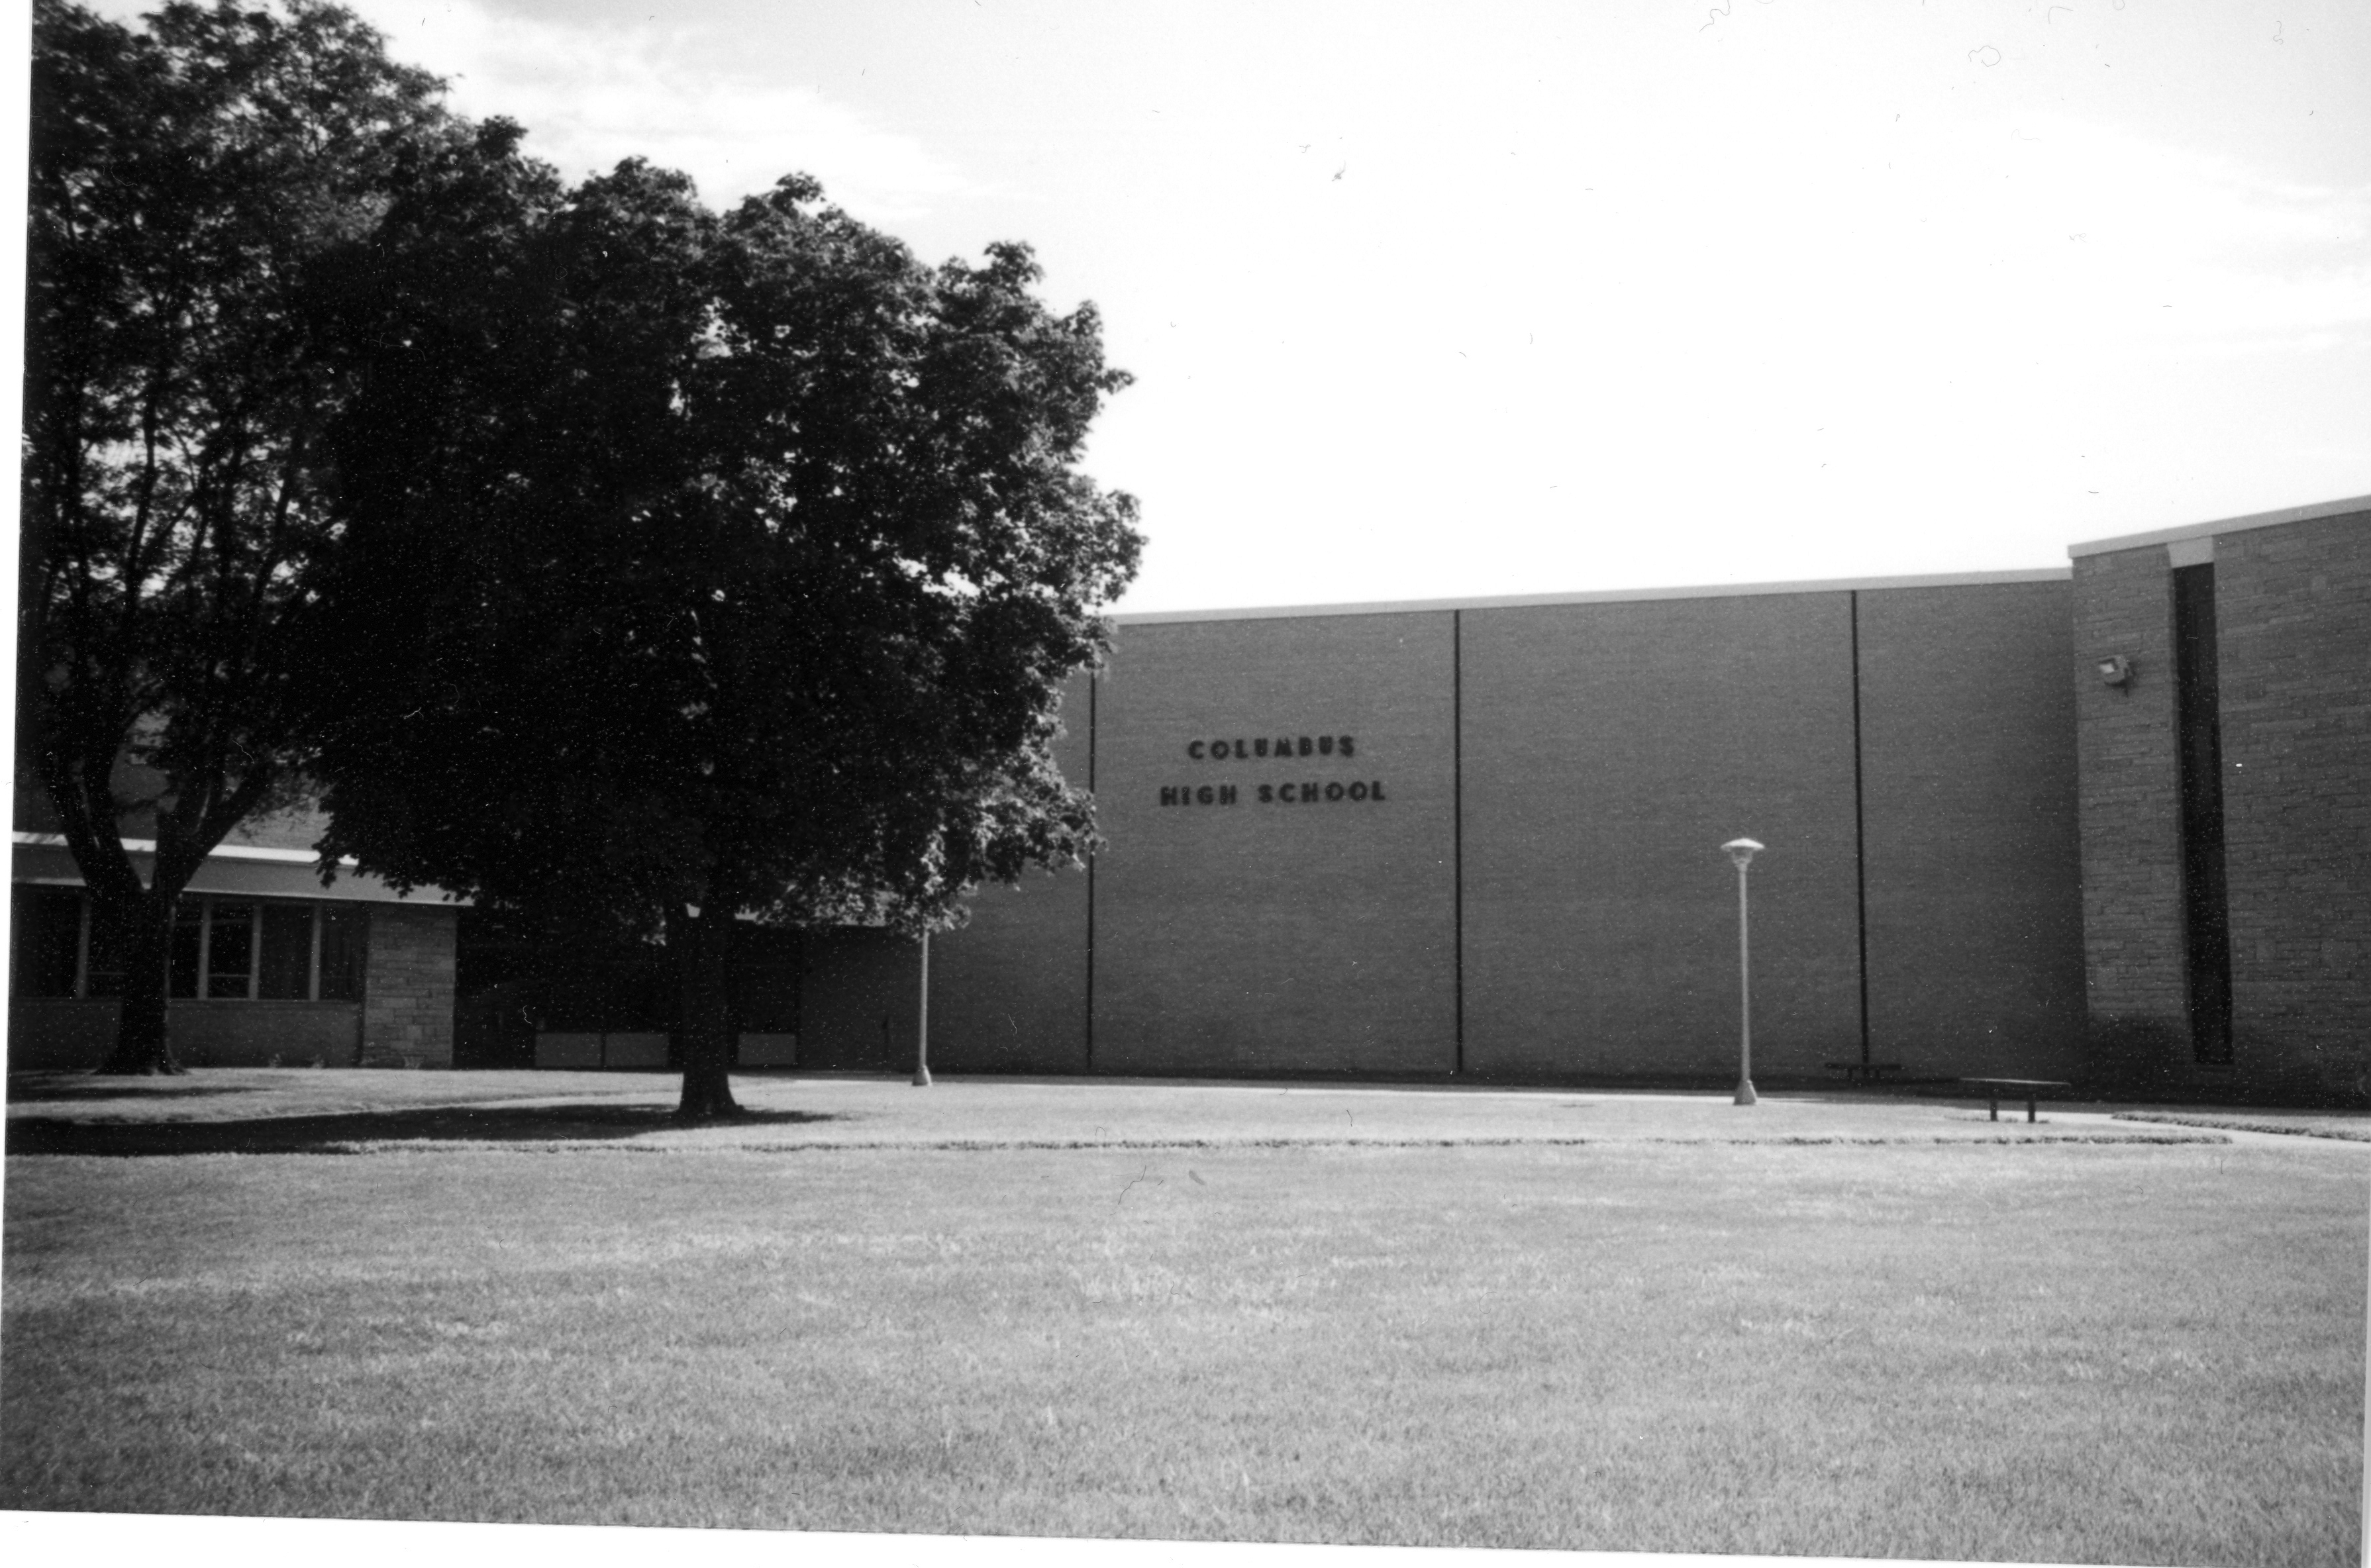 Columbus High School 1959 - 2004